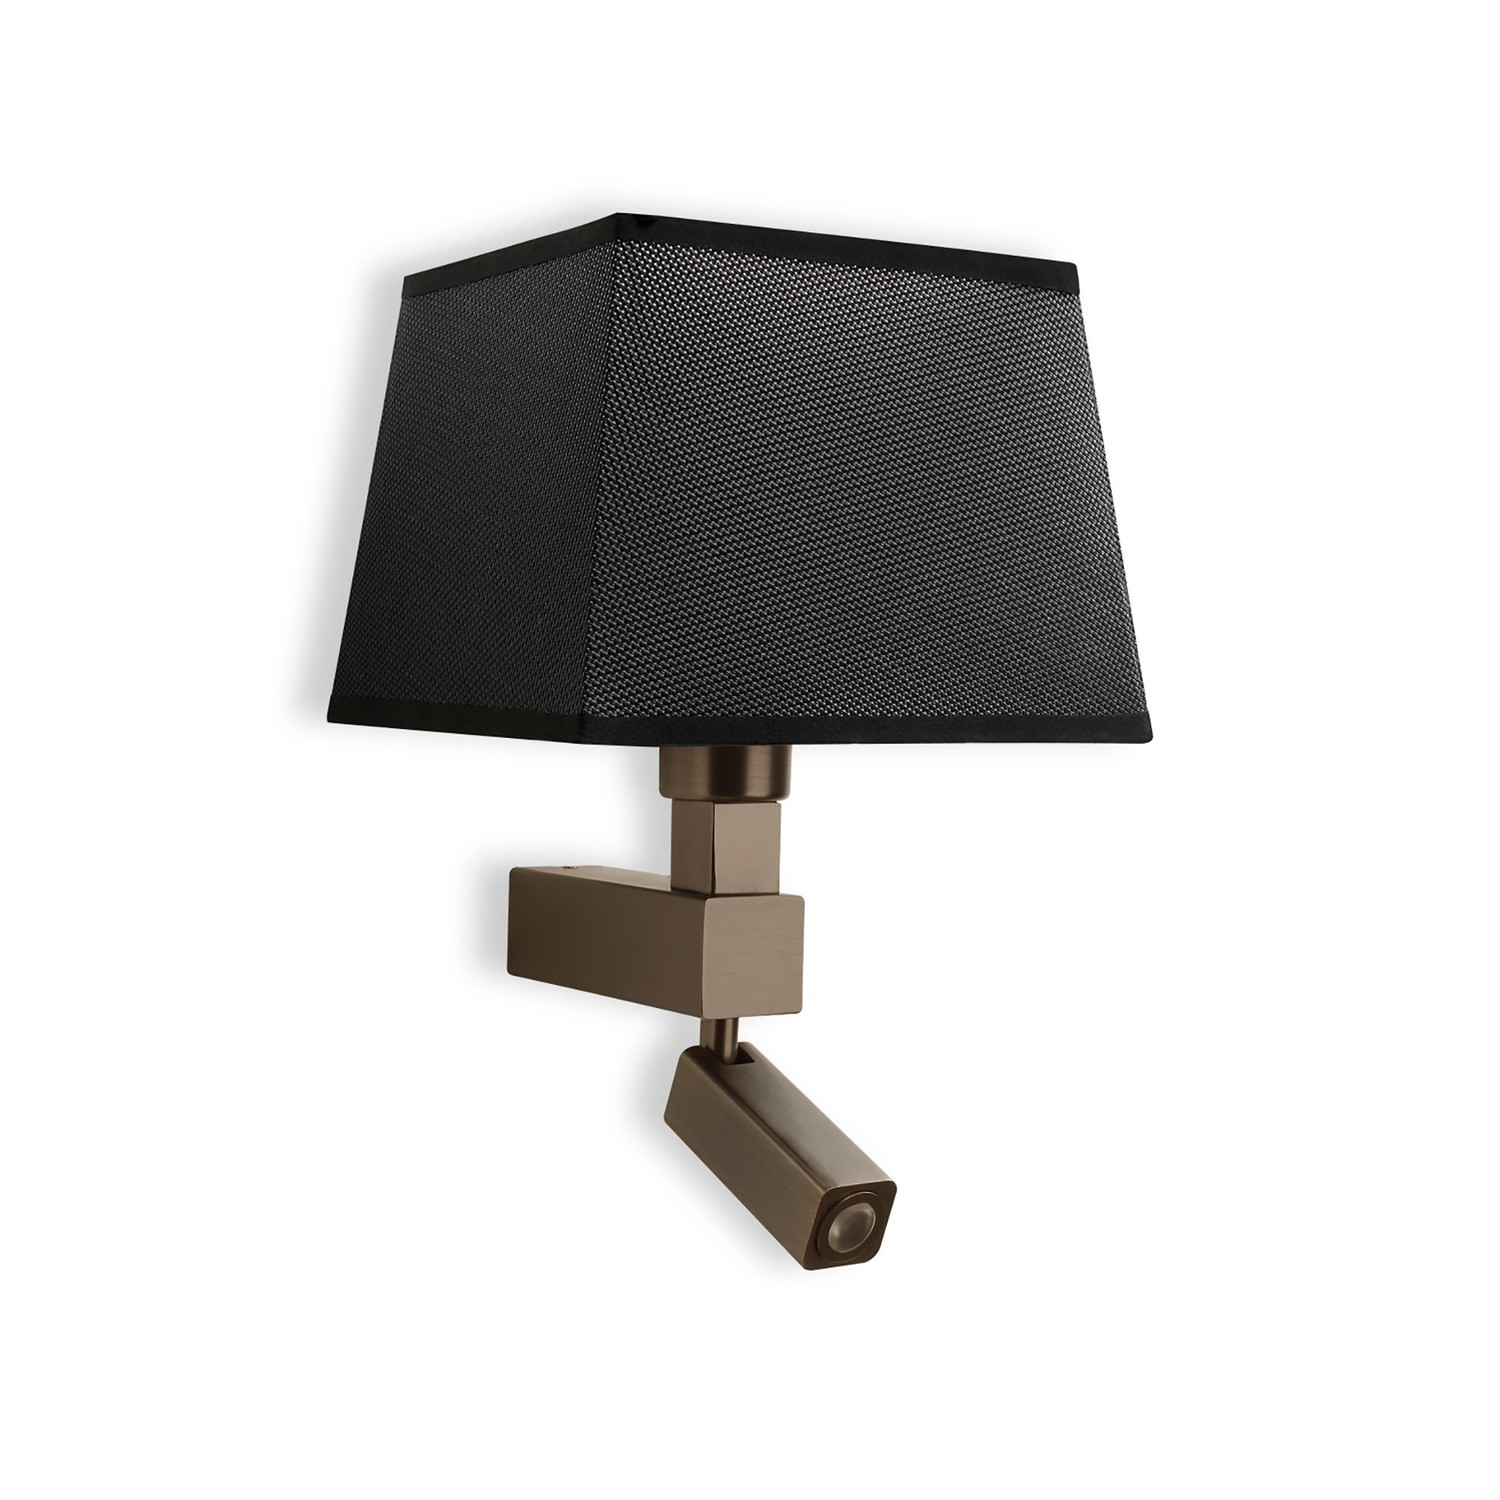 Bahia Wall Lamp 1 Light Without Shade E27 + Reading Light 3W LED Bronze 4000K, 200lm,, 3yrs Warranty